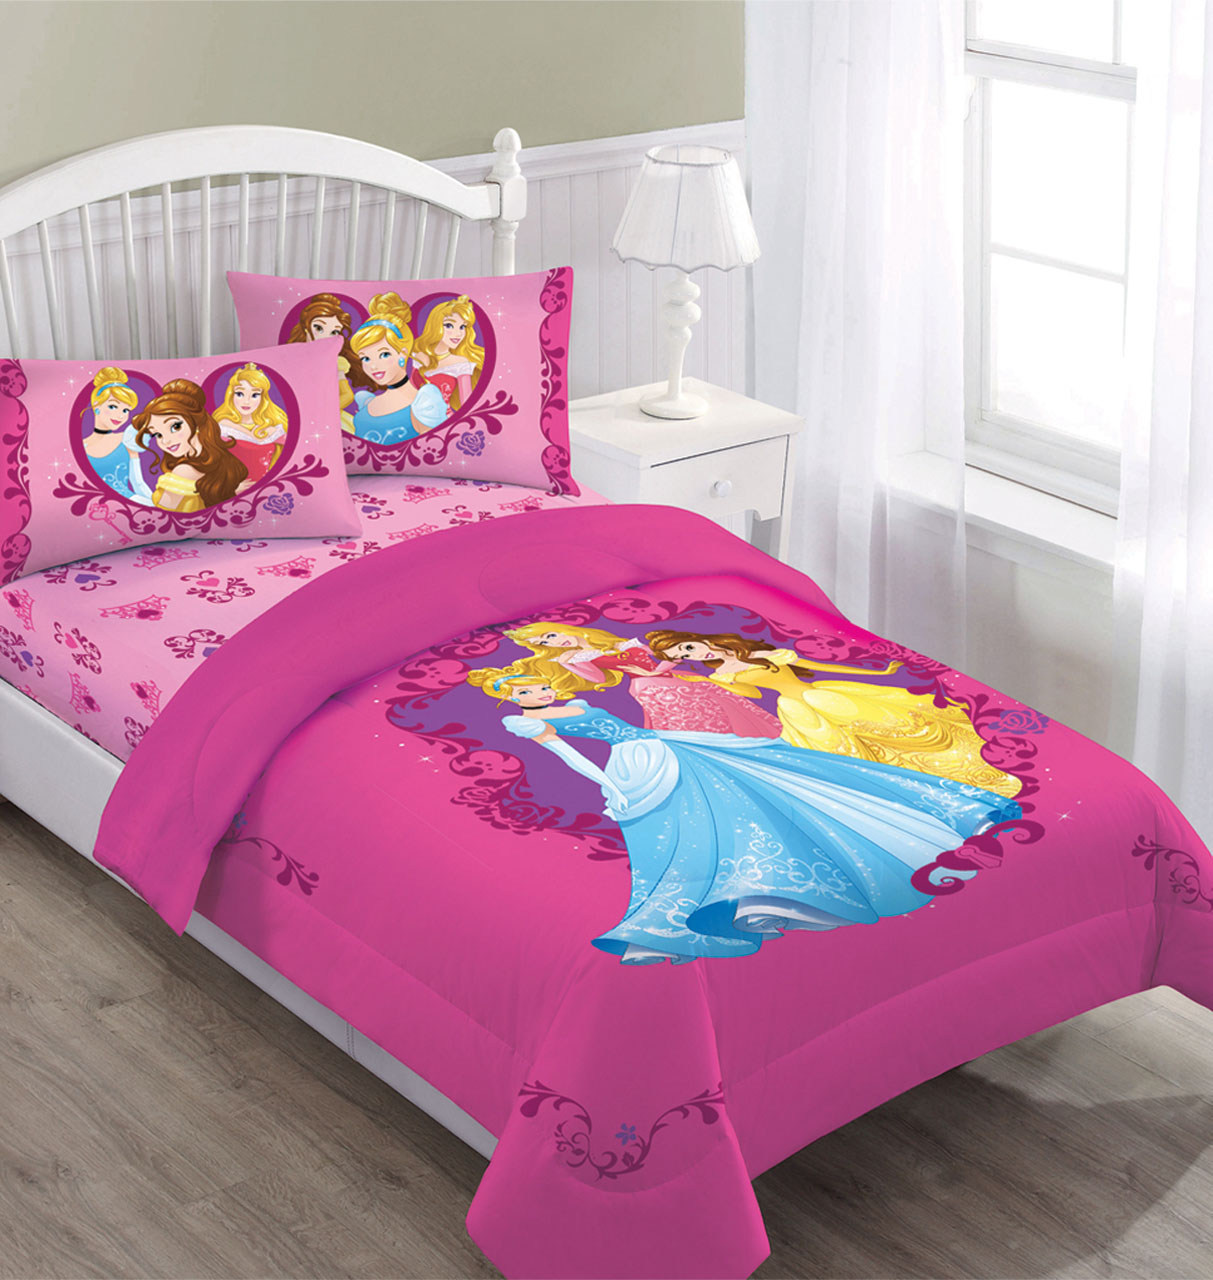 Disney King Bedding